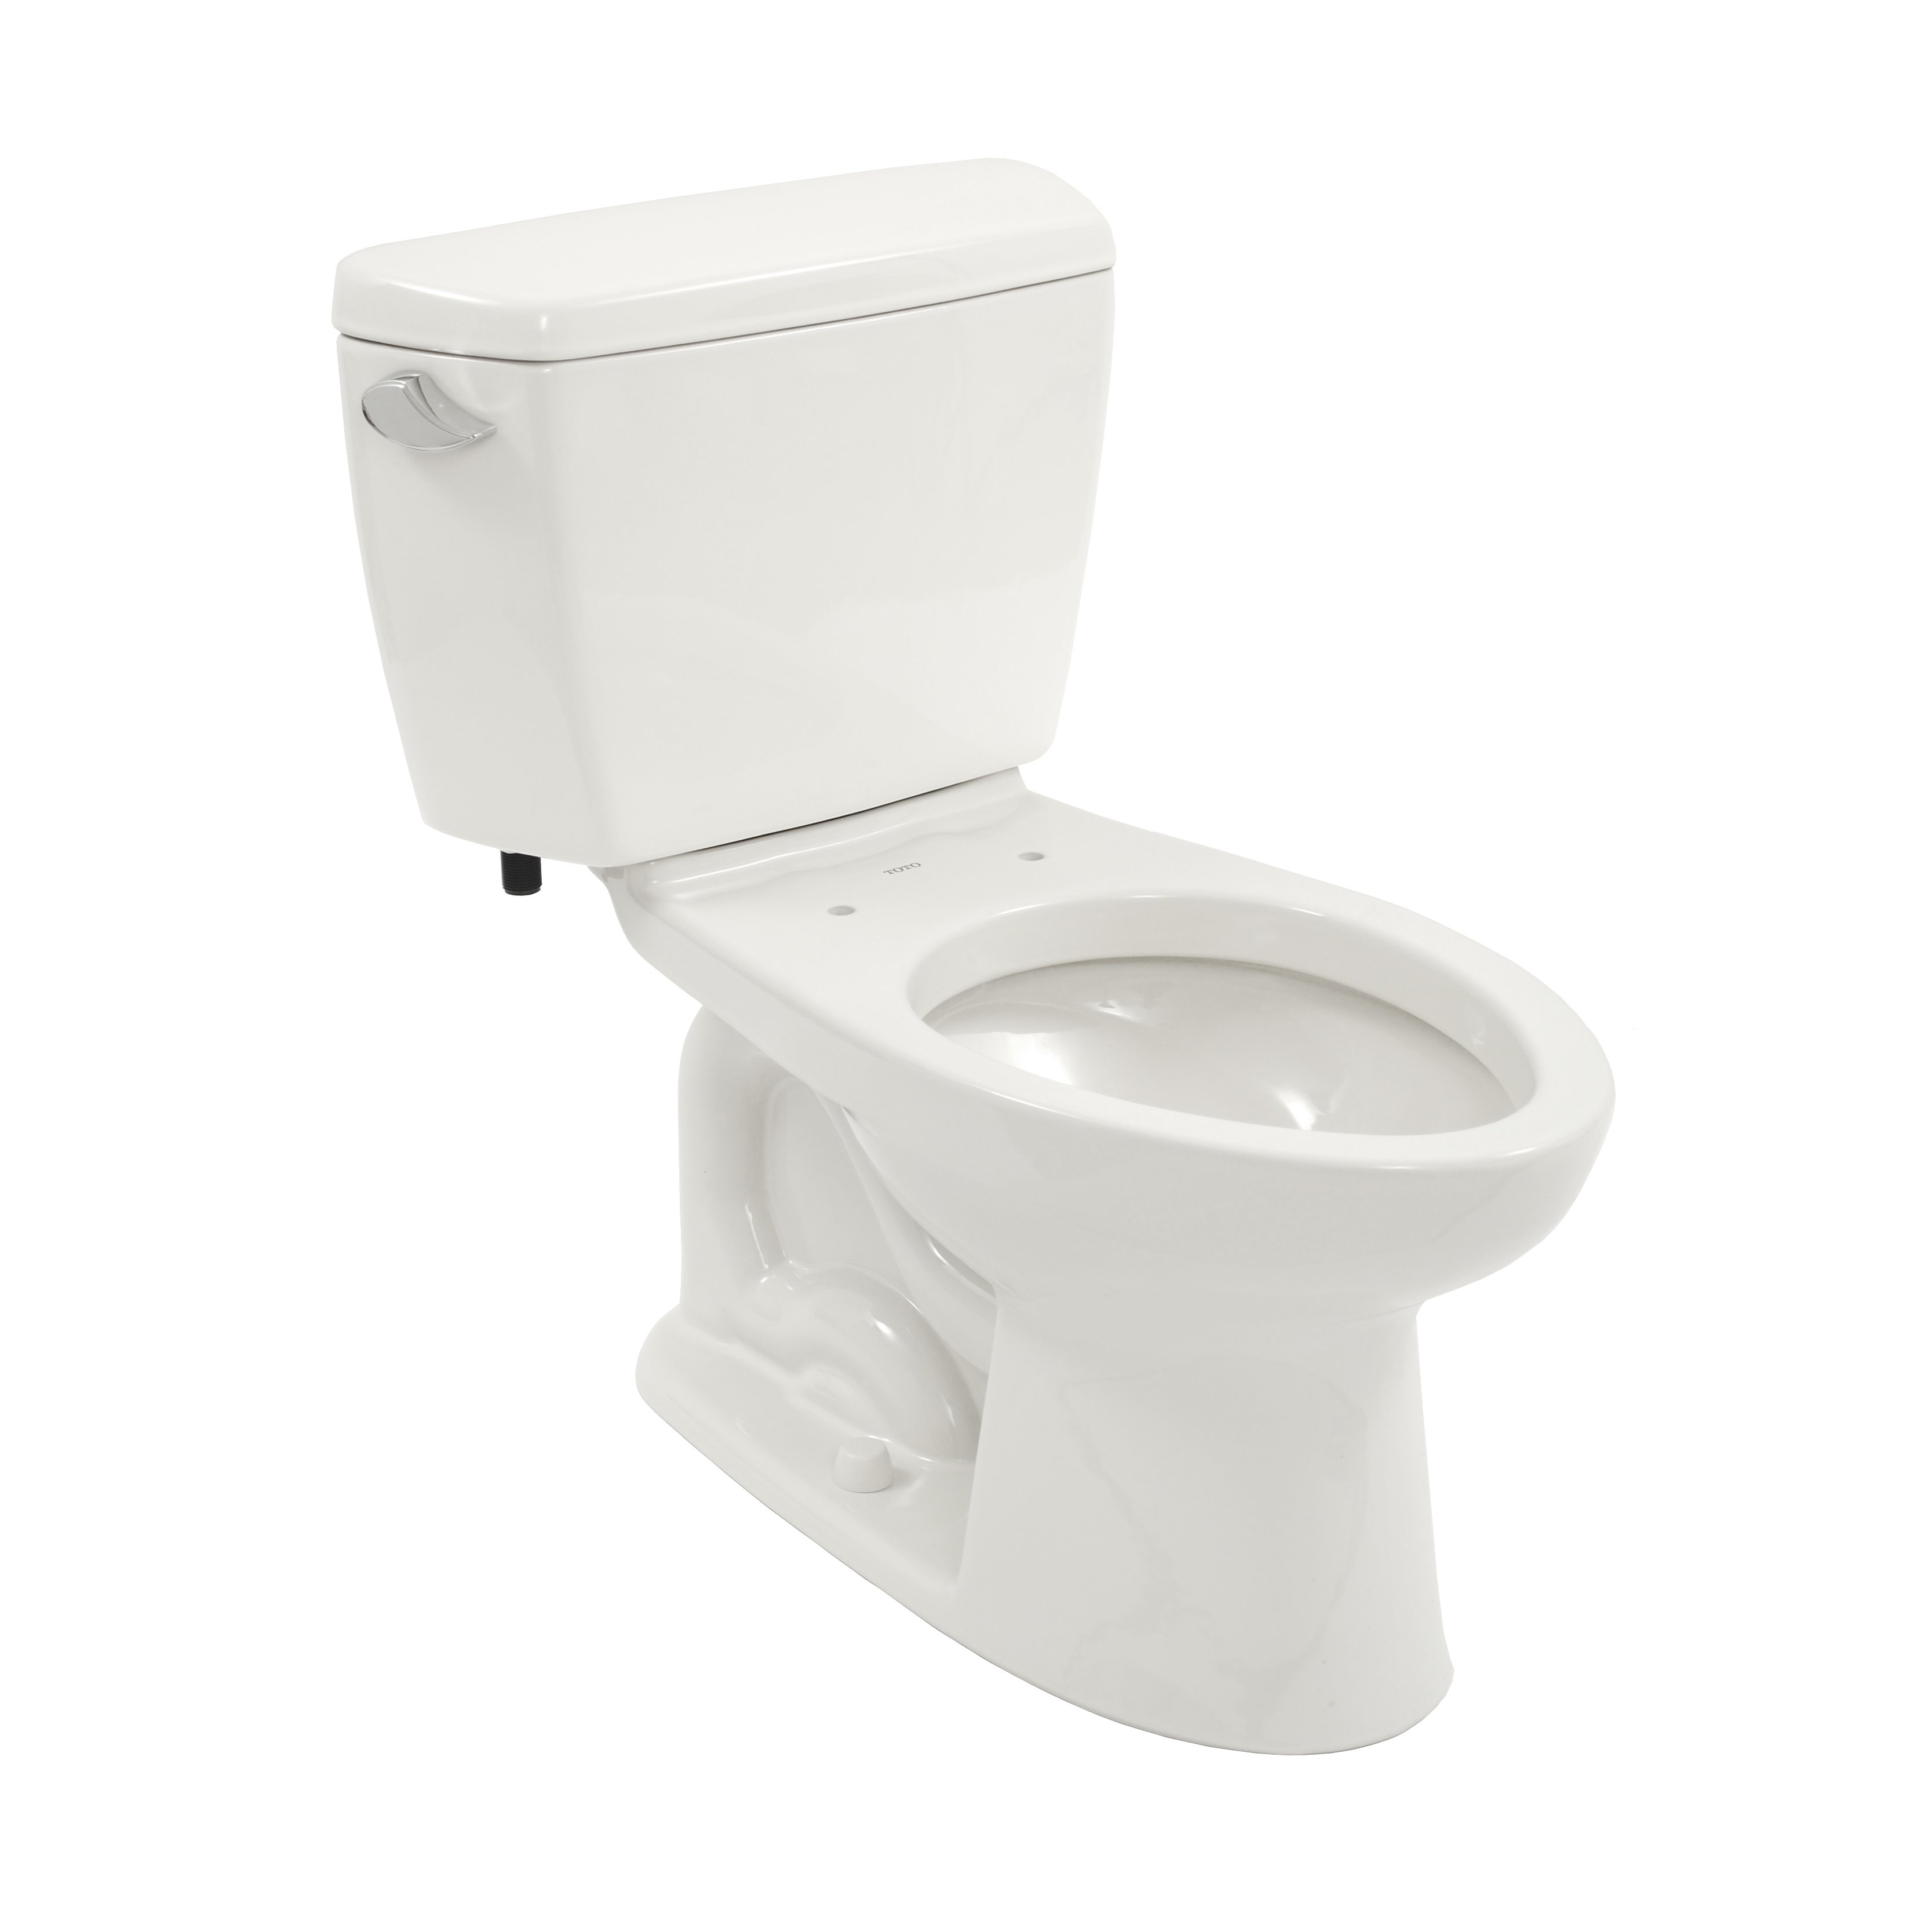 Toto Toilet | Toto Back Outlet Toilet | Toilet with Built in Bidet